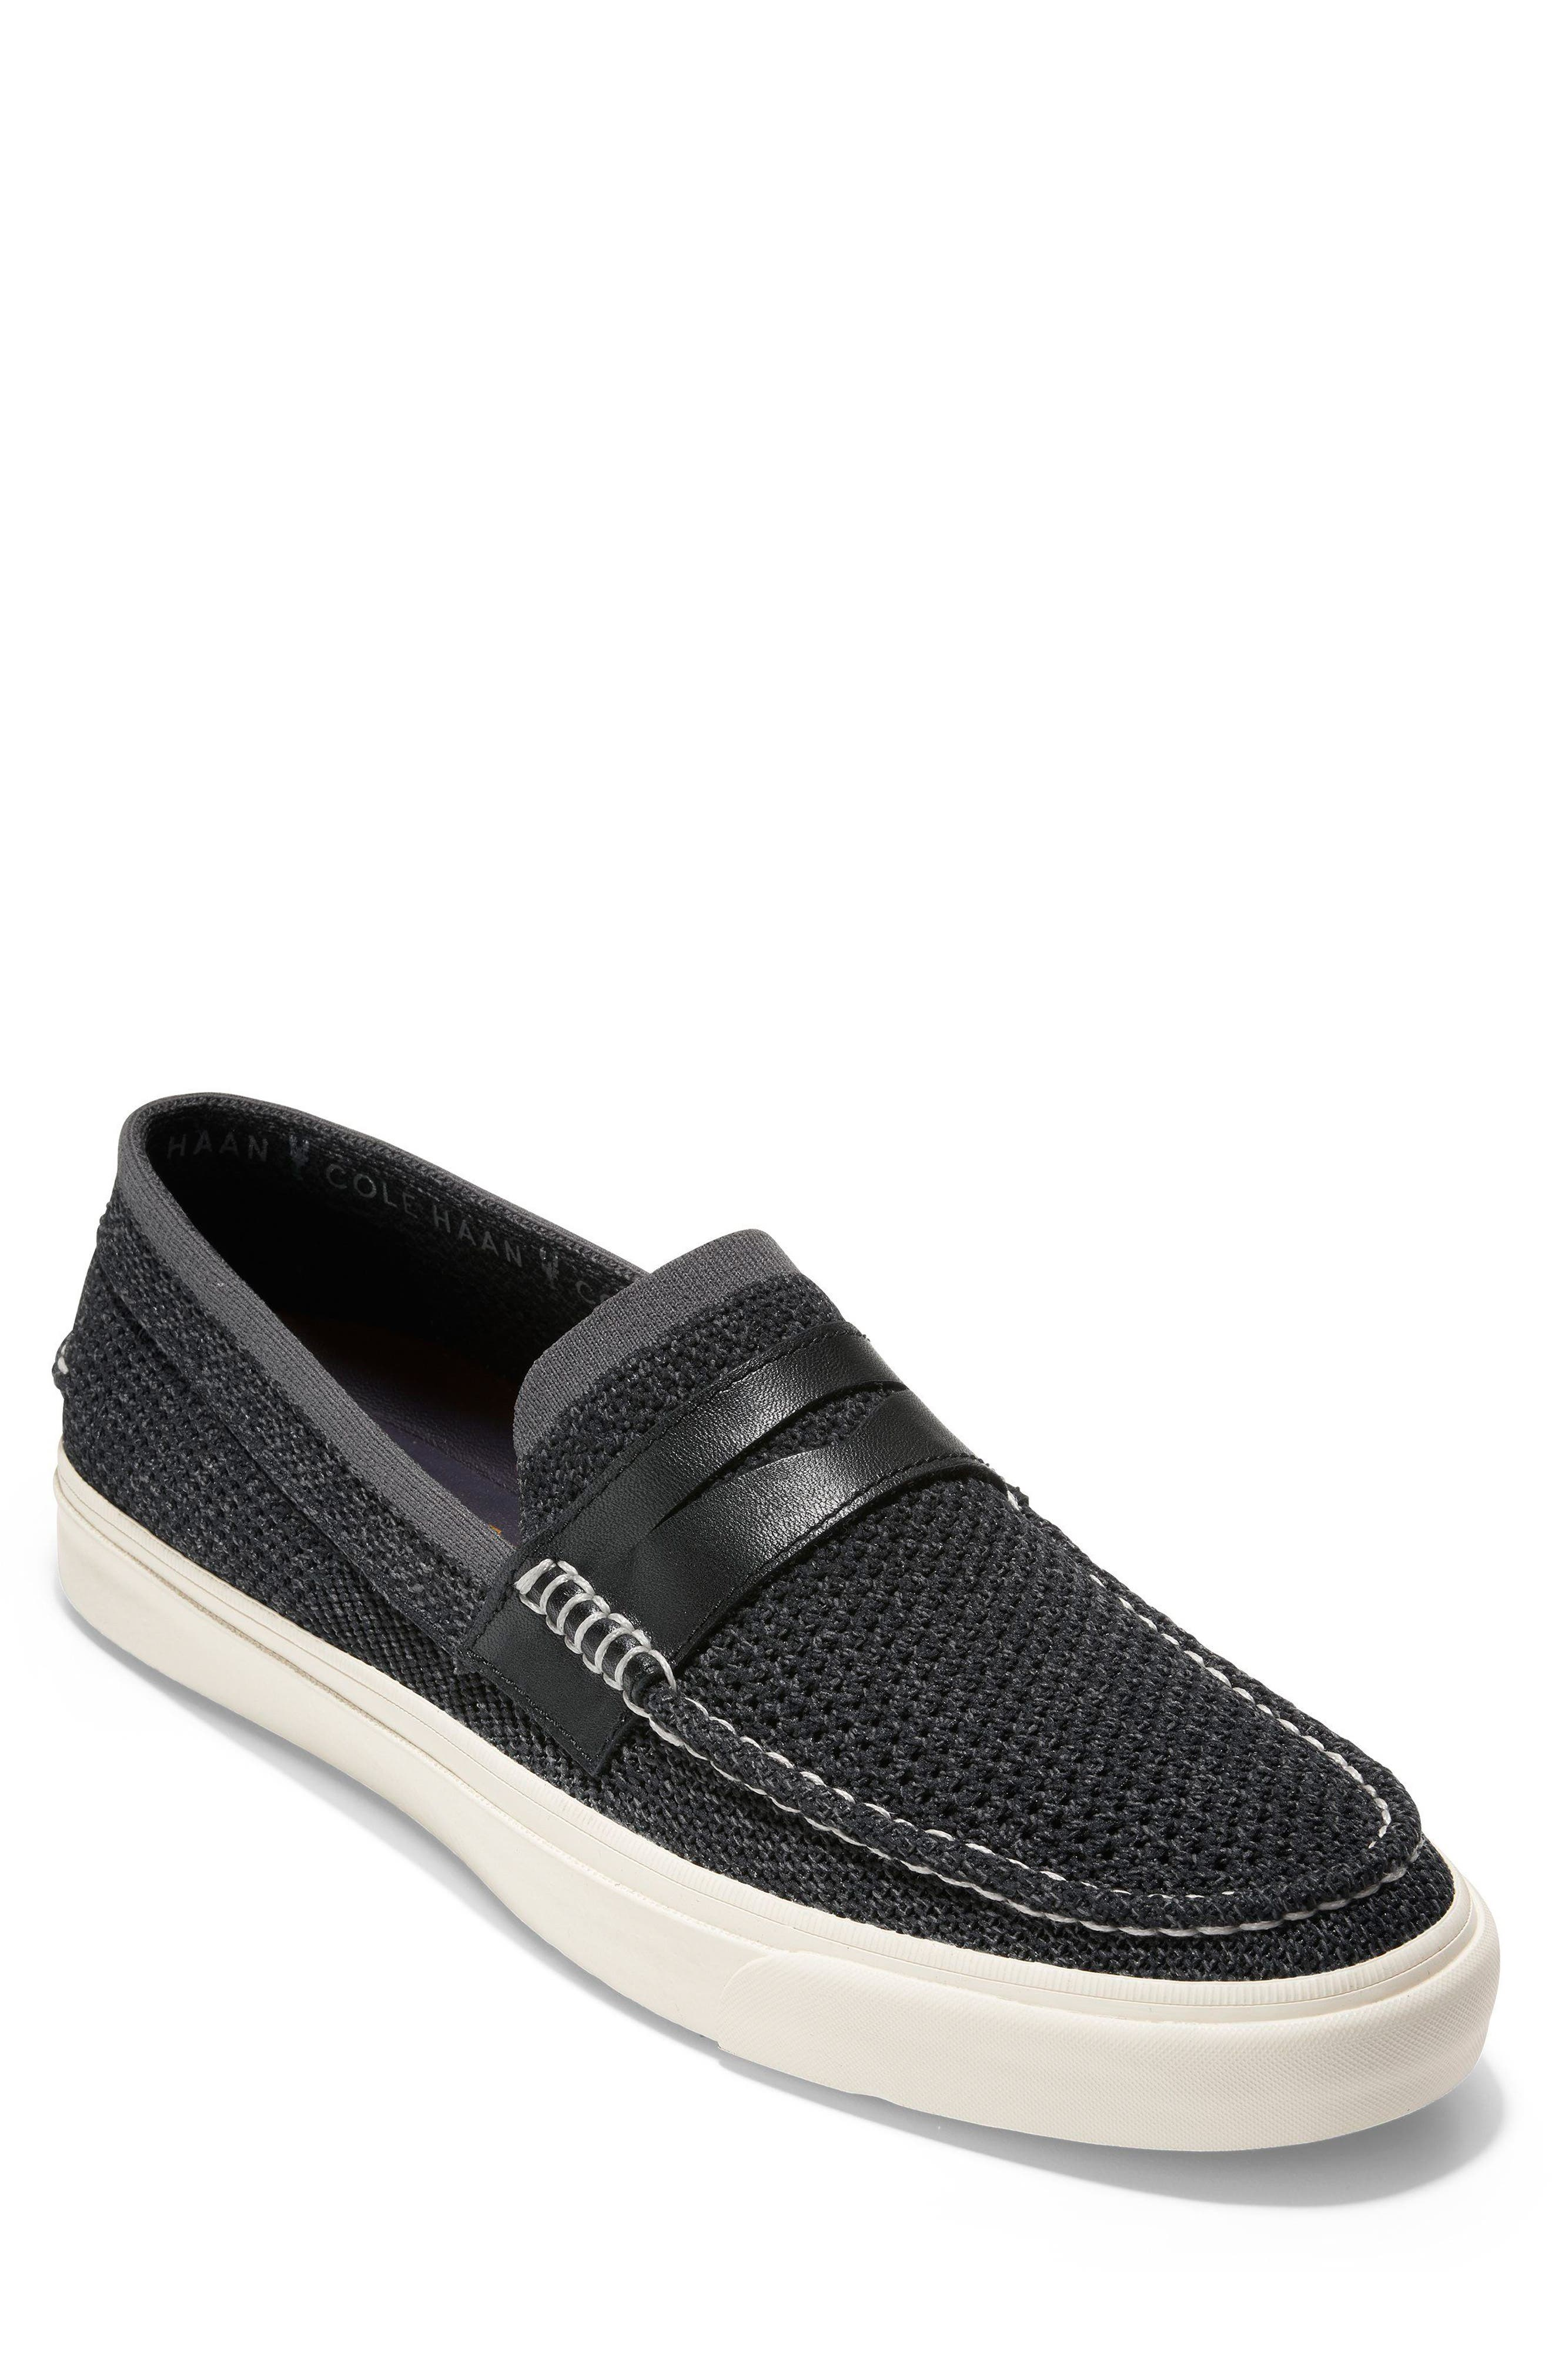 Pinch Weekend Stitch Penny Loafer,                         Main,                         color, 001